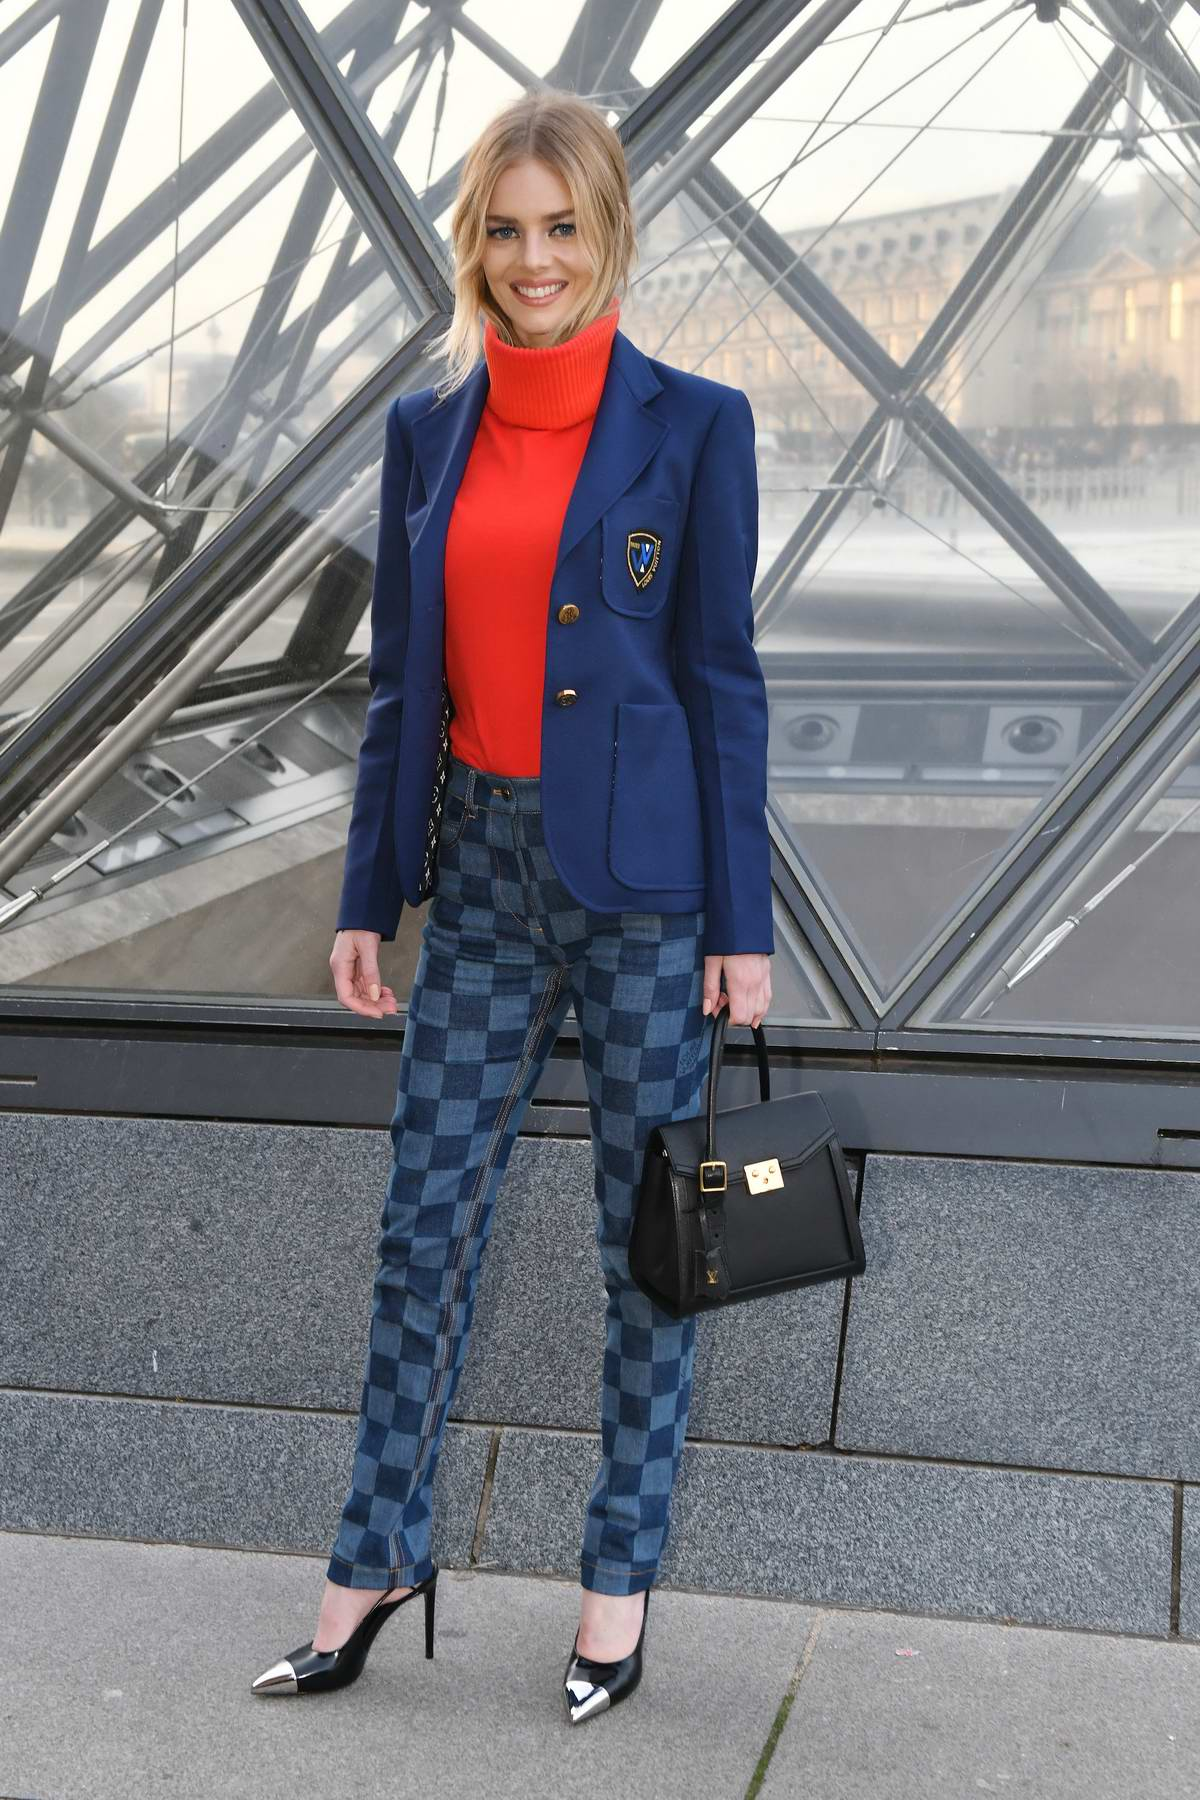 Samara Weaving attends the Louis Vuitton show during Paris Fashion Week F/W 2019/20 in Paris, France